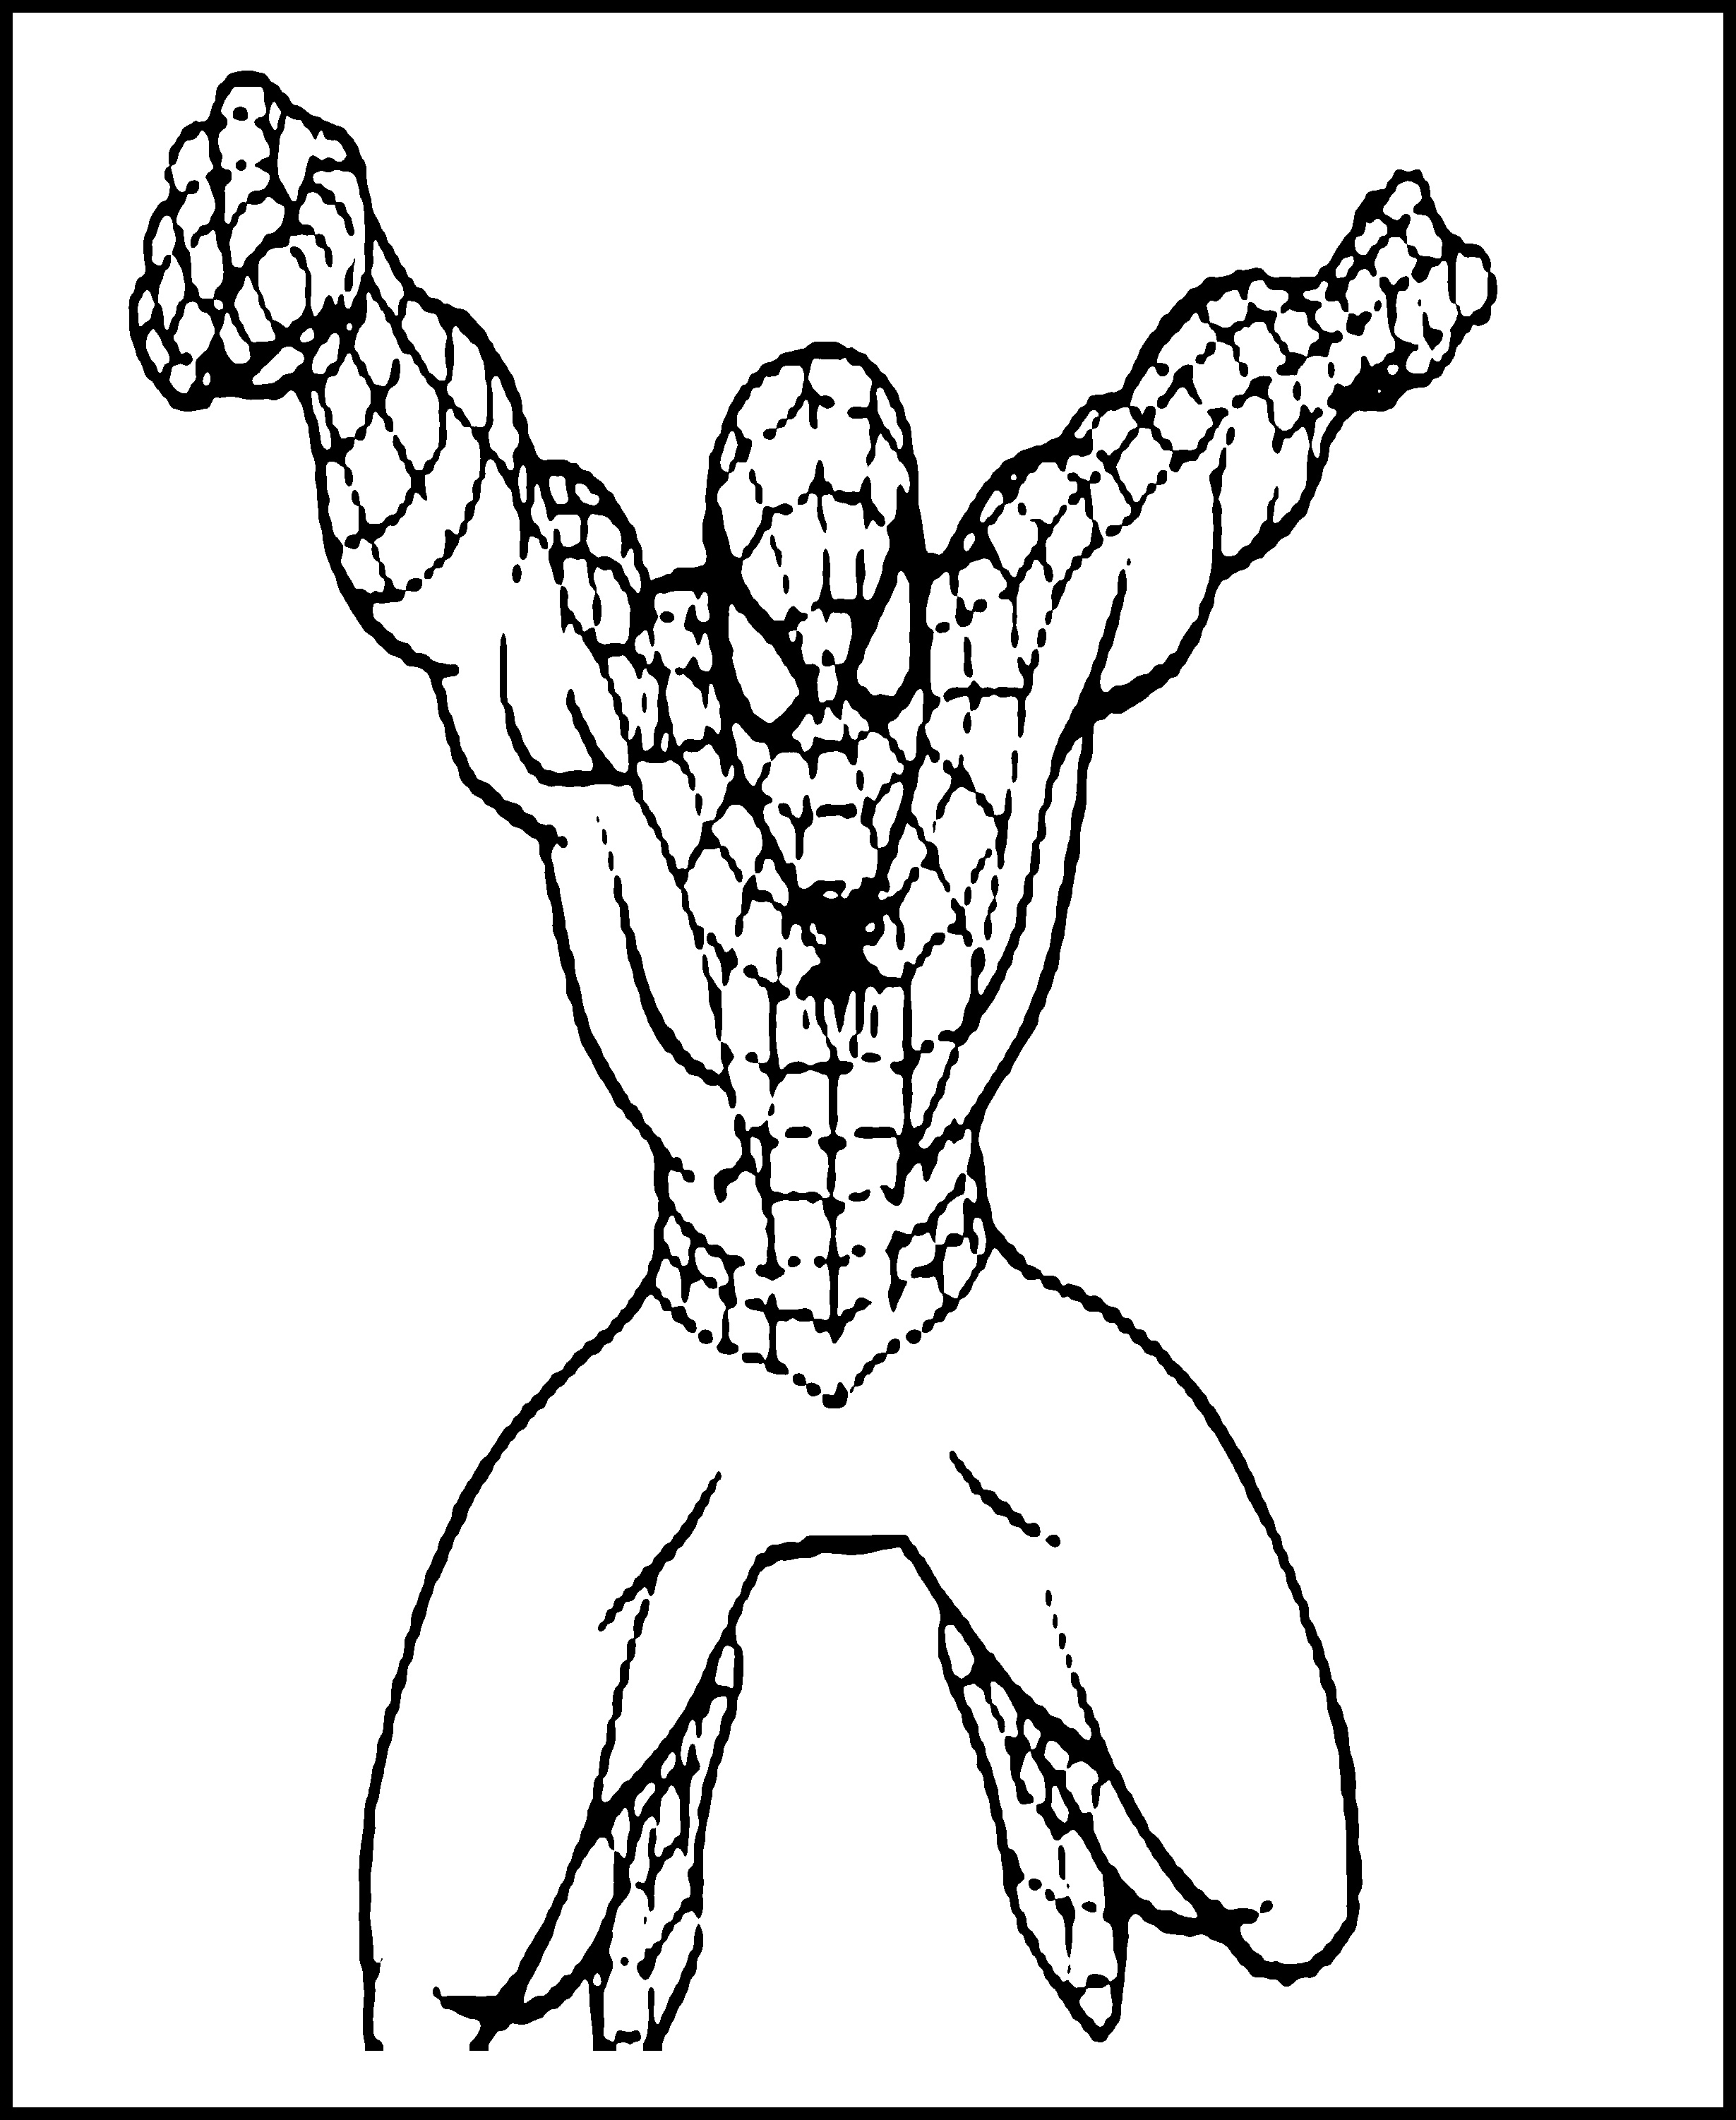 spiderman coloring pages to print out - Pictures To Print Out